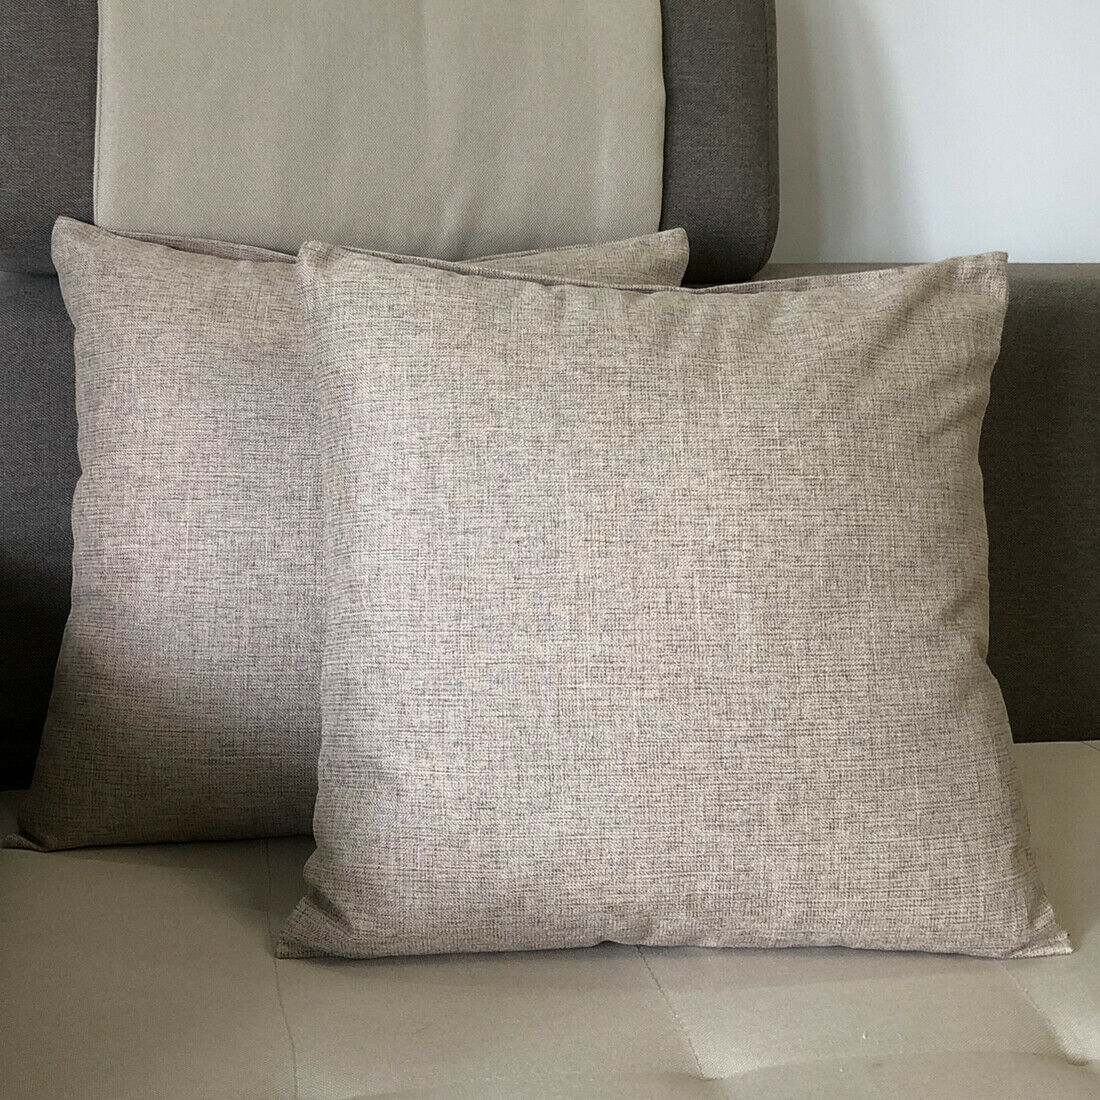 Throw Pillow Covers Flower Cotton Linen Cushion Cover Handmade Decora Grey 20x20 For Sale Online Ebay